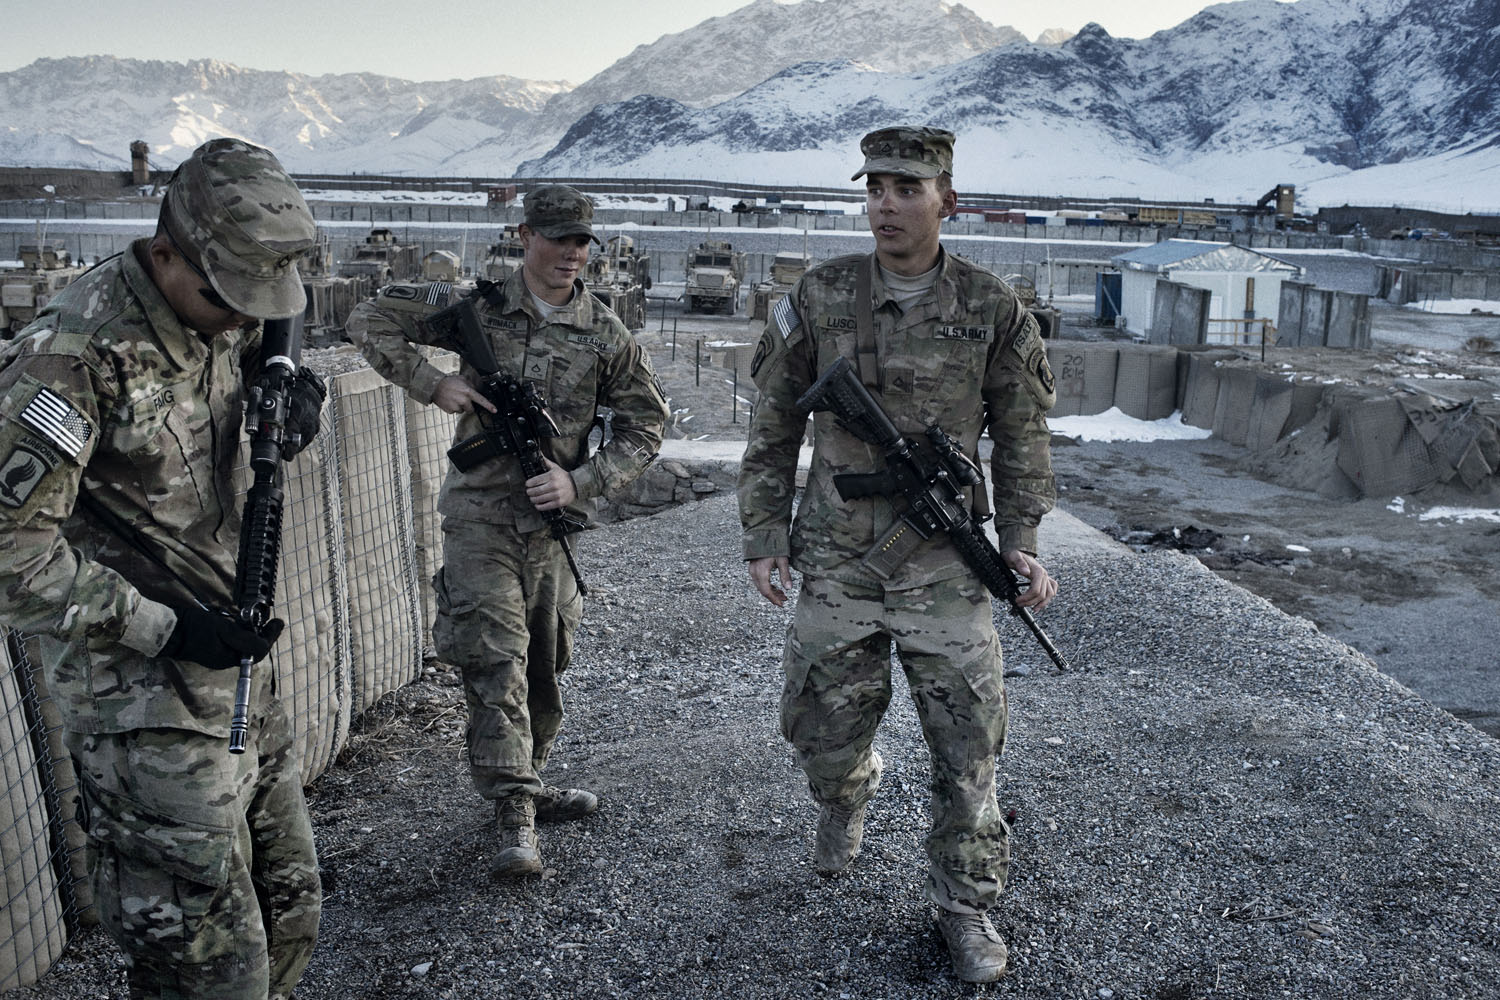 (From L to R) Private First Class YuanYun Fang, 19, Private First Class Kyle Womack, 19 and Private First Class Tyler Luscan, 20, at Forward Operating Base Altimur, Logar Province, Afghanistan. The soldiers, members of Bull Battery, 4-319 Airborne Field Artillery Battalion, all joined the Army less than two weeks after finishing high school and have served a nine-month combat tour together in eastern Afghanistan.